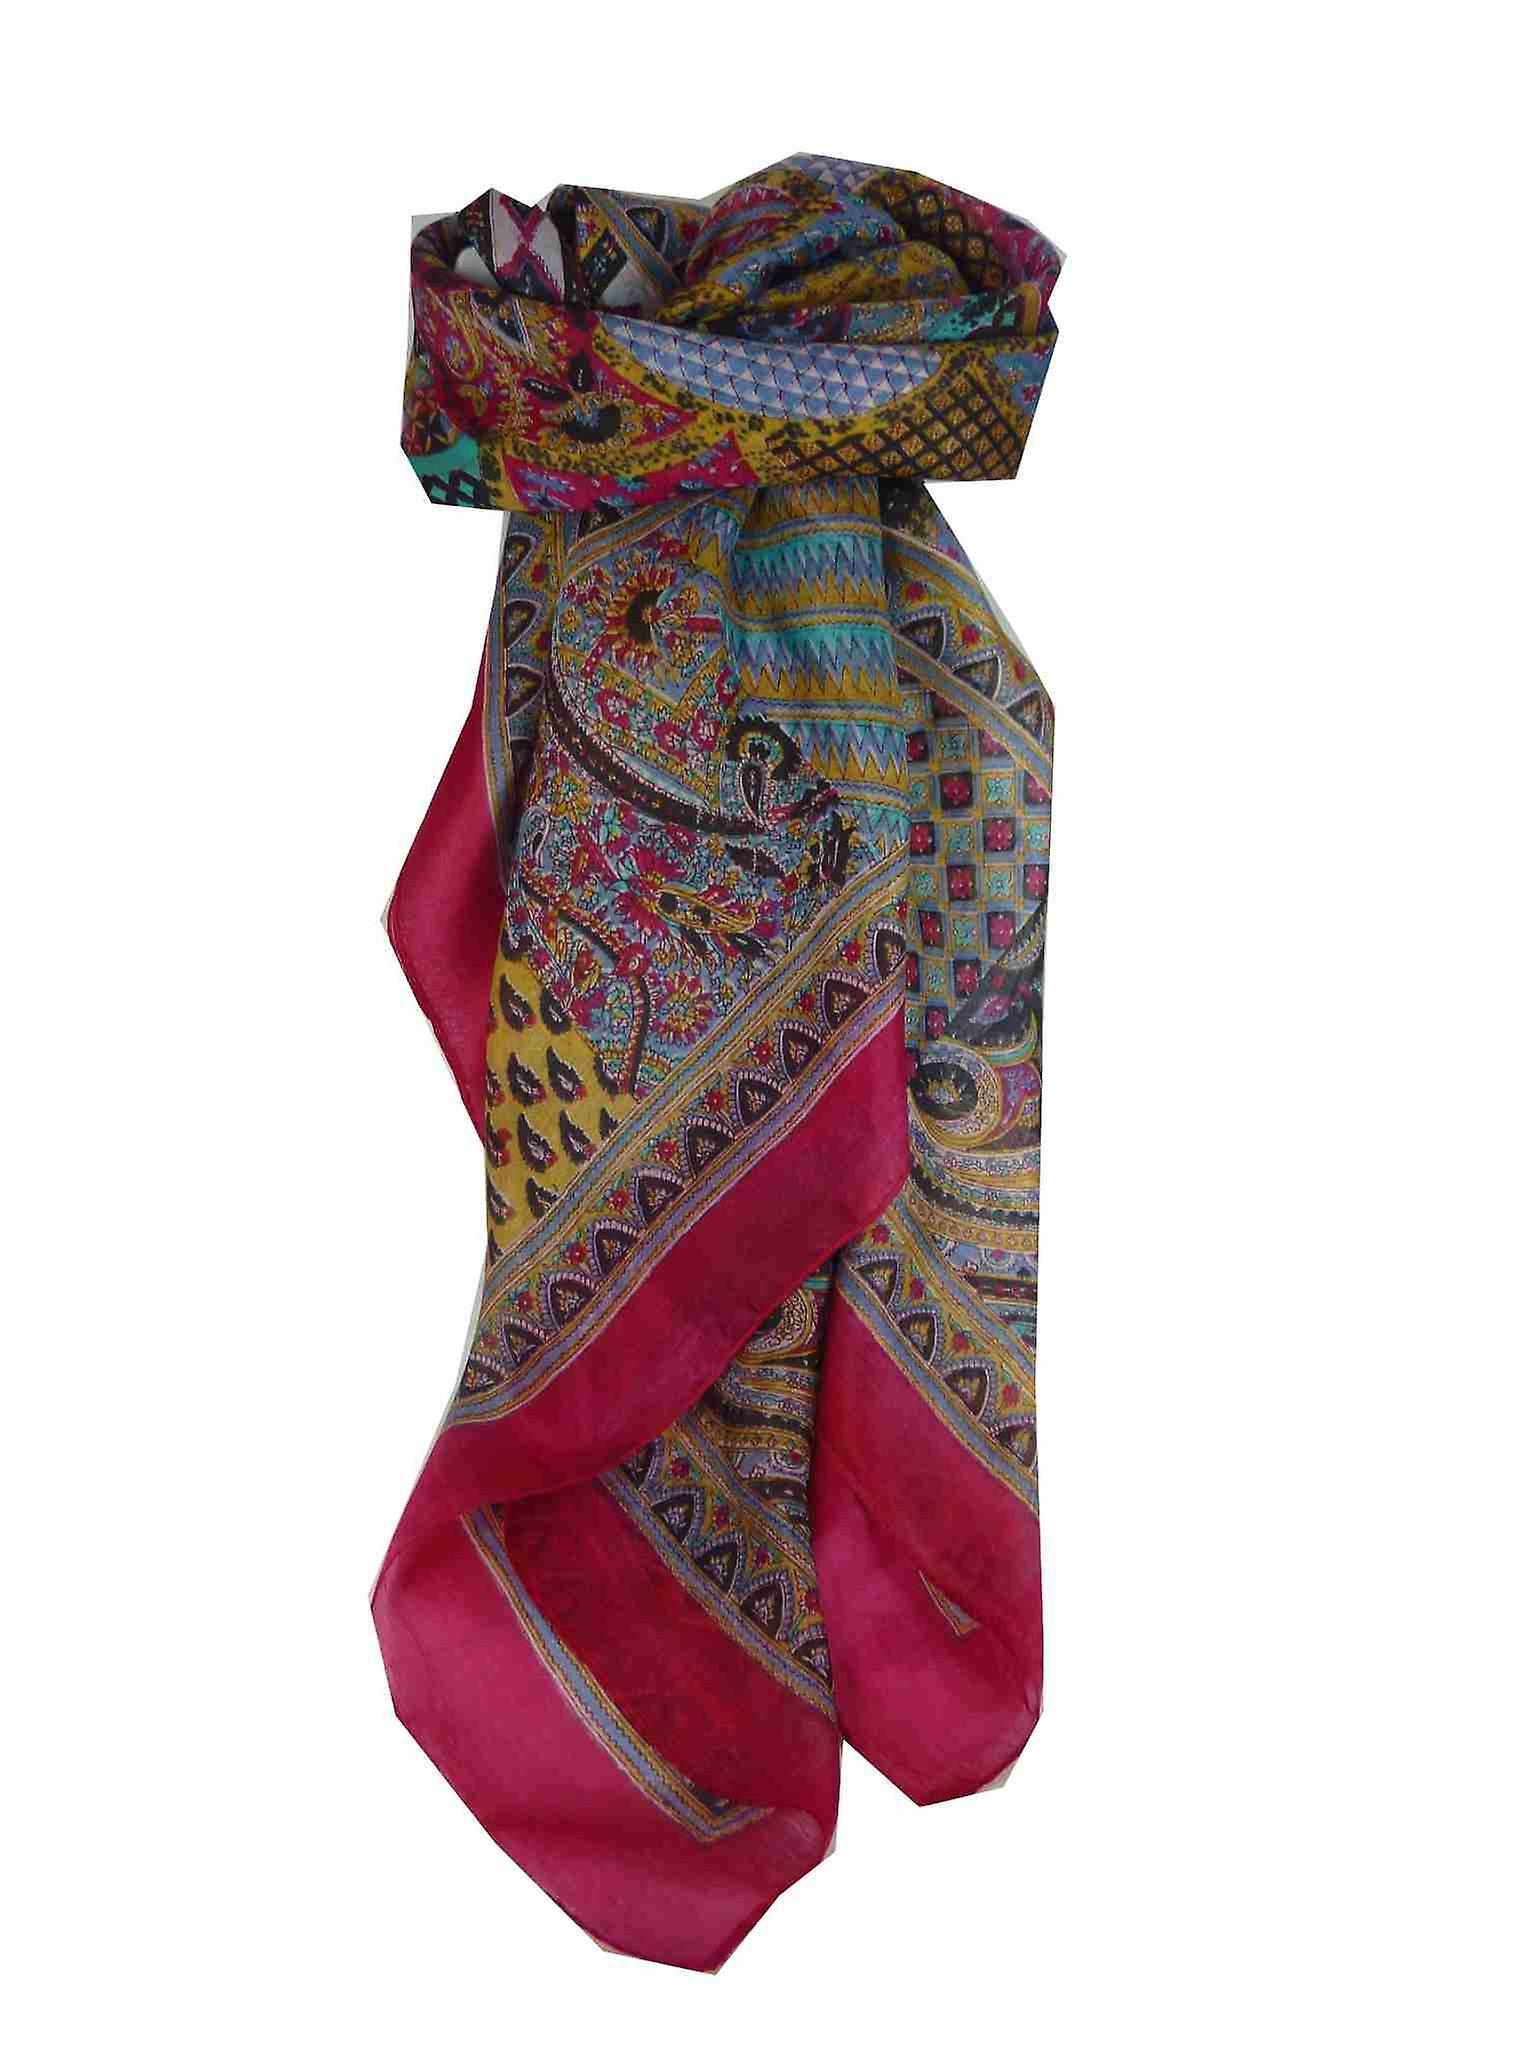 Mulberry Silk Traditional Square Scarf Ajanta Pink by Pashmina & Silk